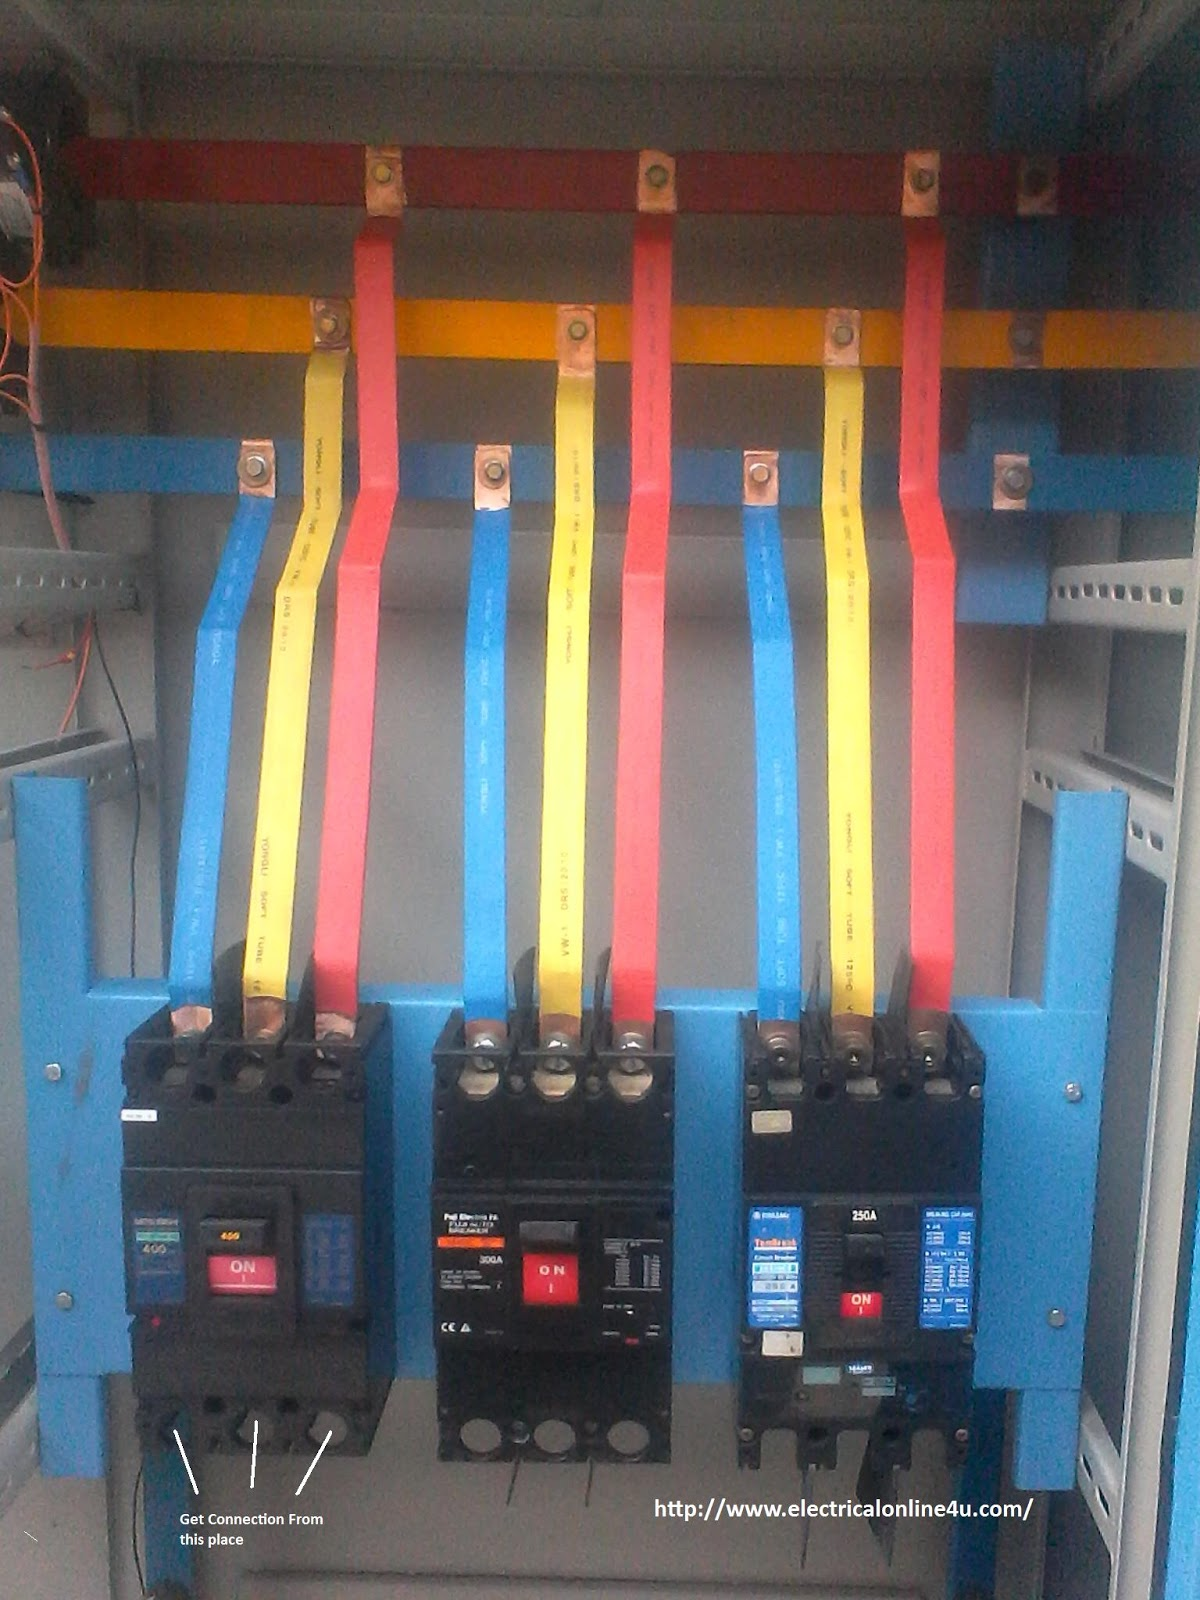 circuit breaker installation for three phase supply 3 phase panel rh electricalonline4u com